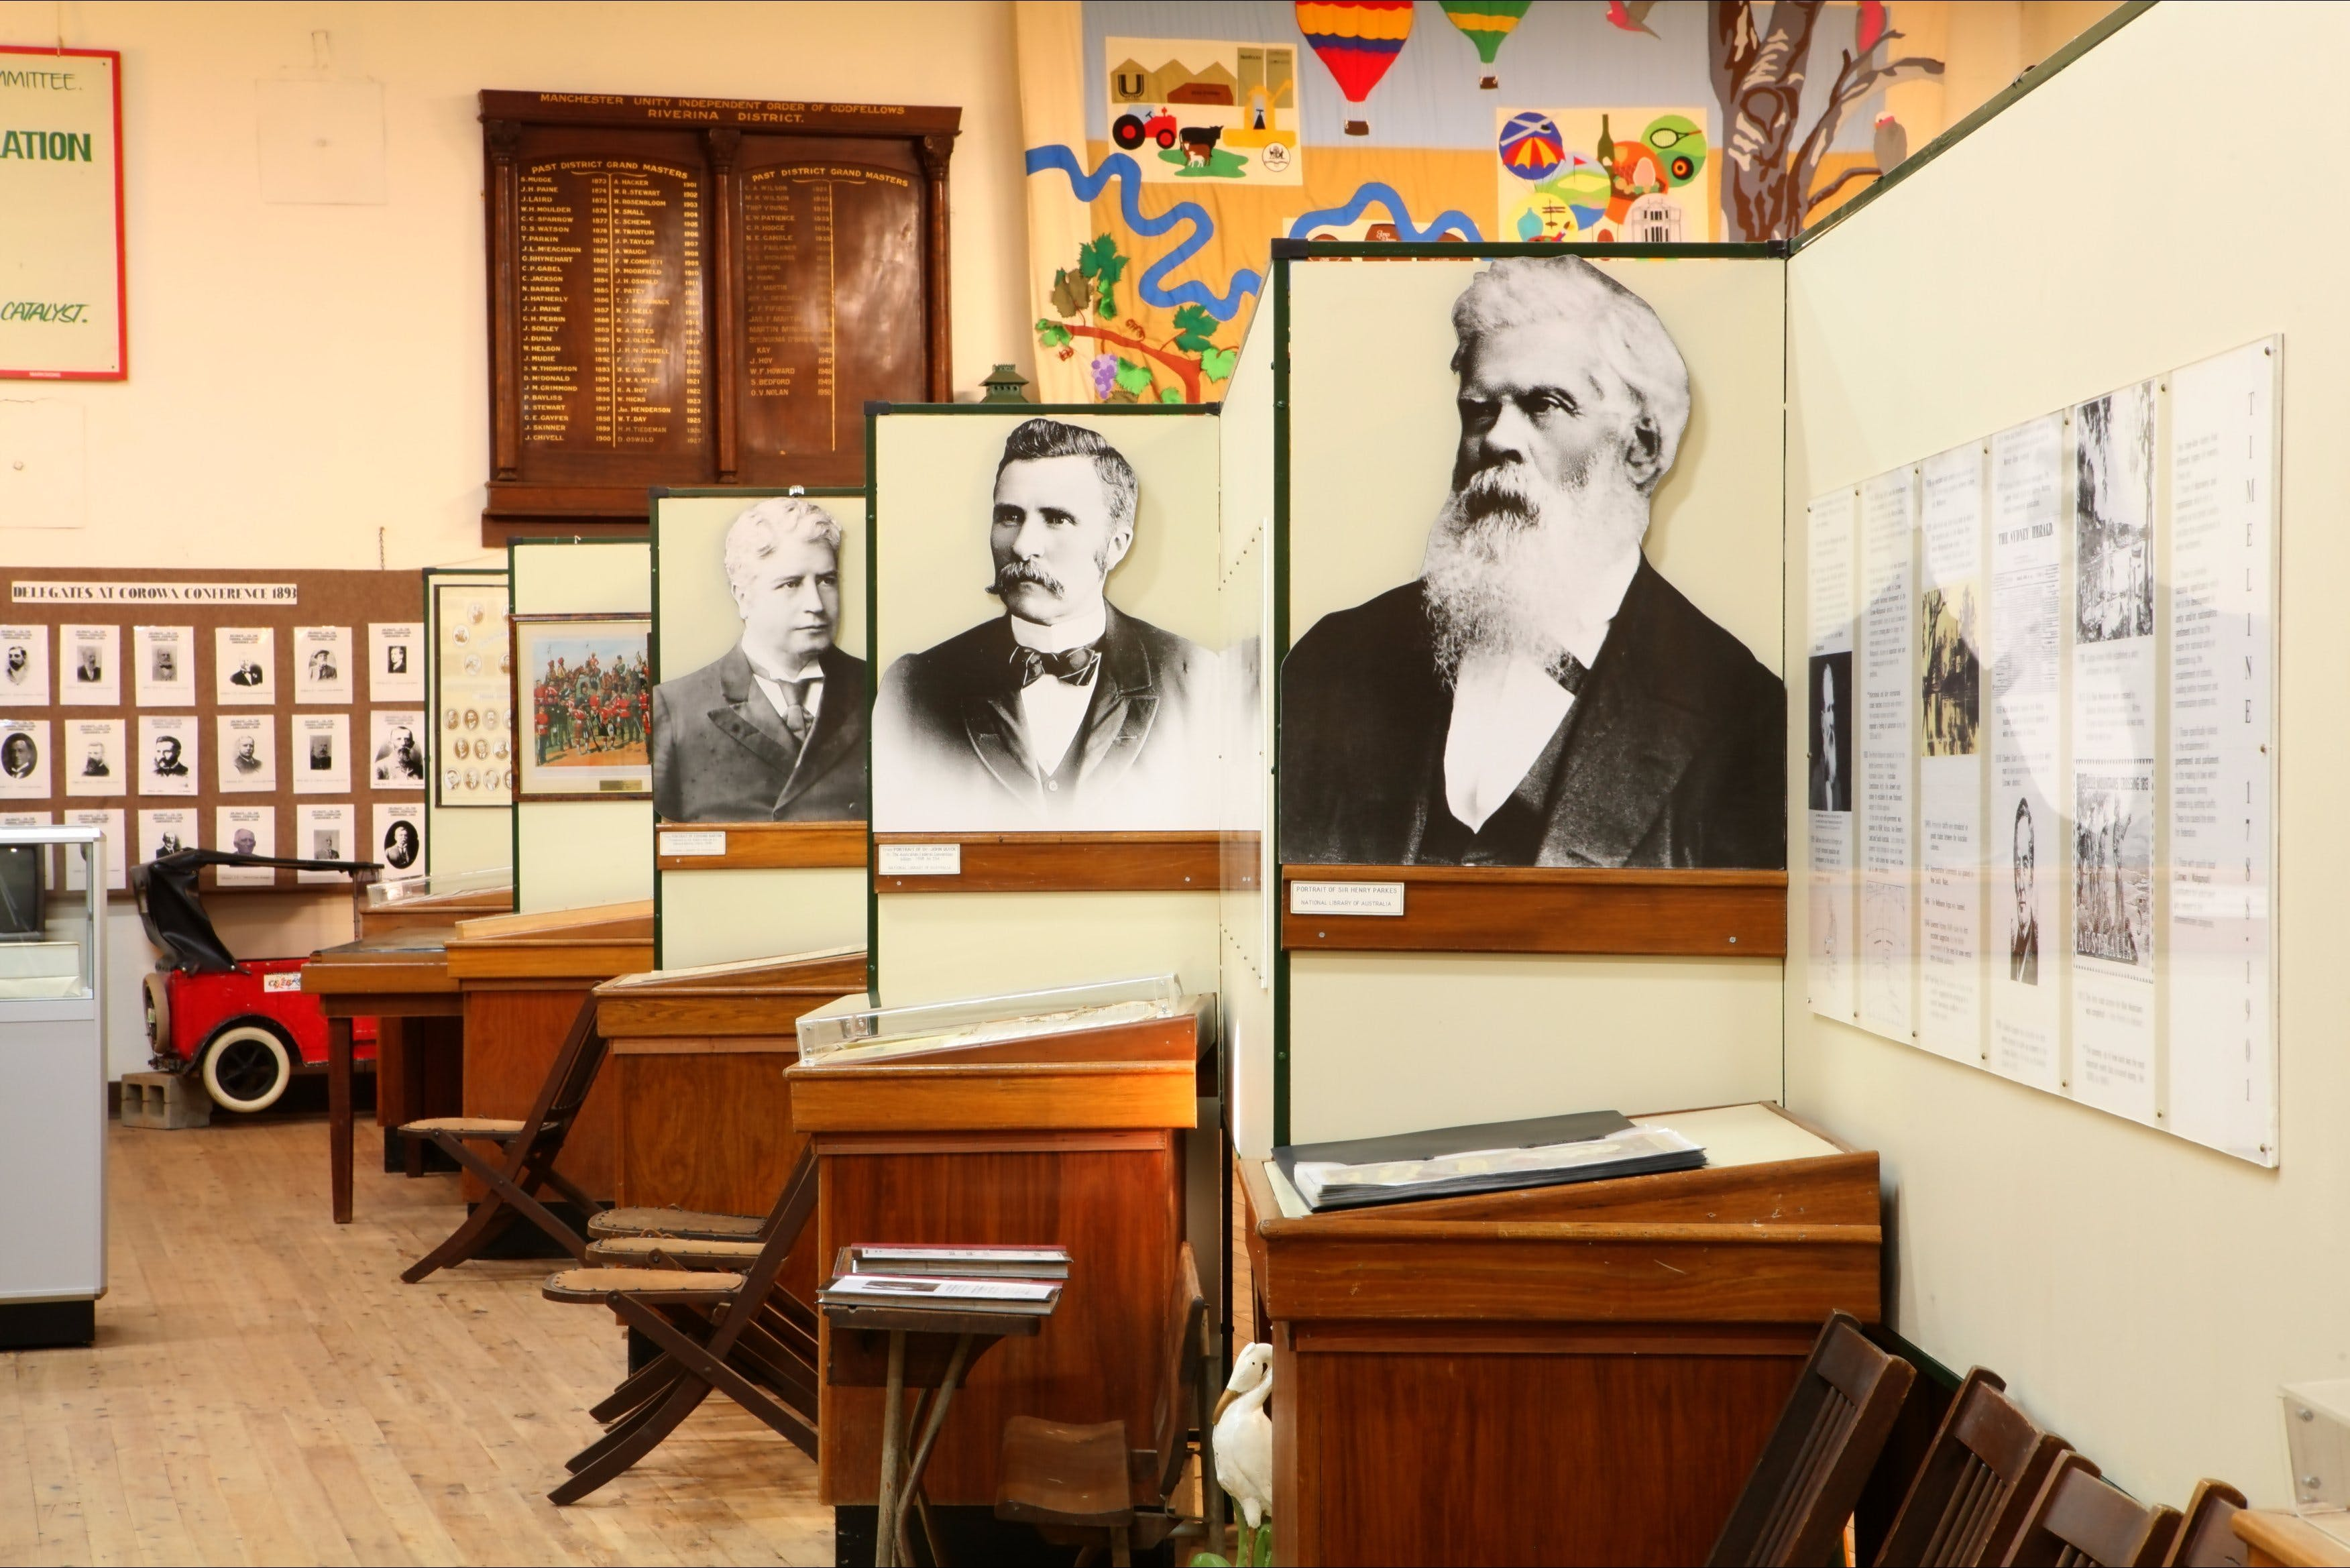 Corowa Federation Museum - Find Attractions